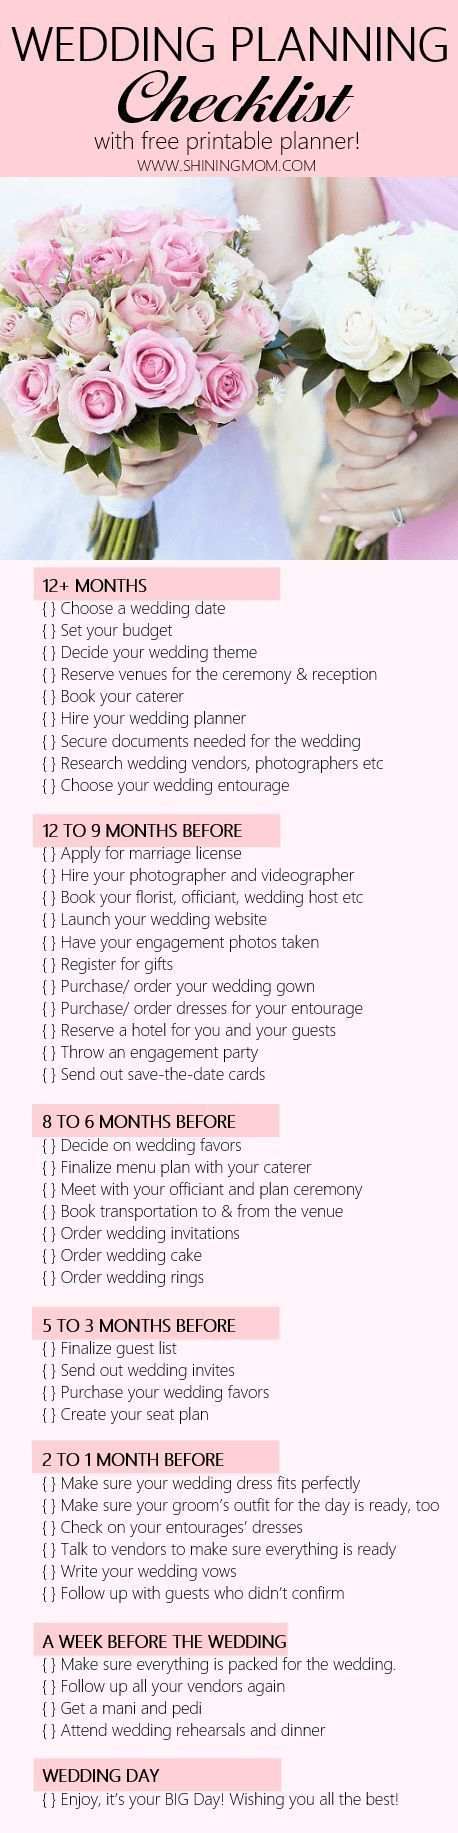 wedding planning checklist spreadsheet free%0A Never miss an important detail on your wedding with this wedding planning  checklist  It also